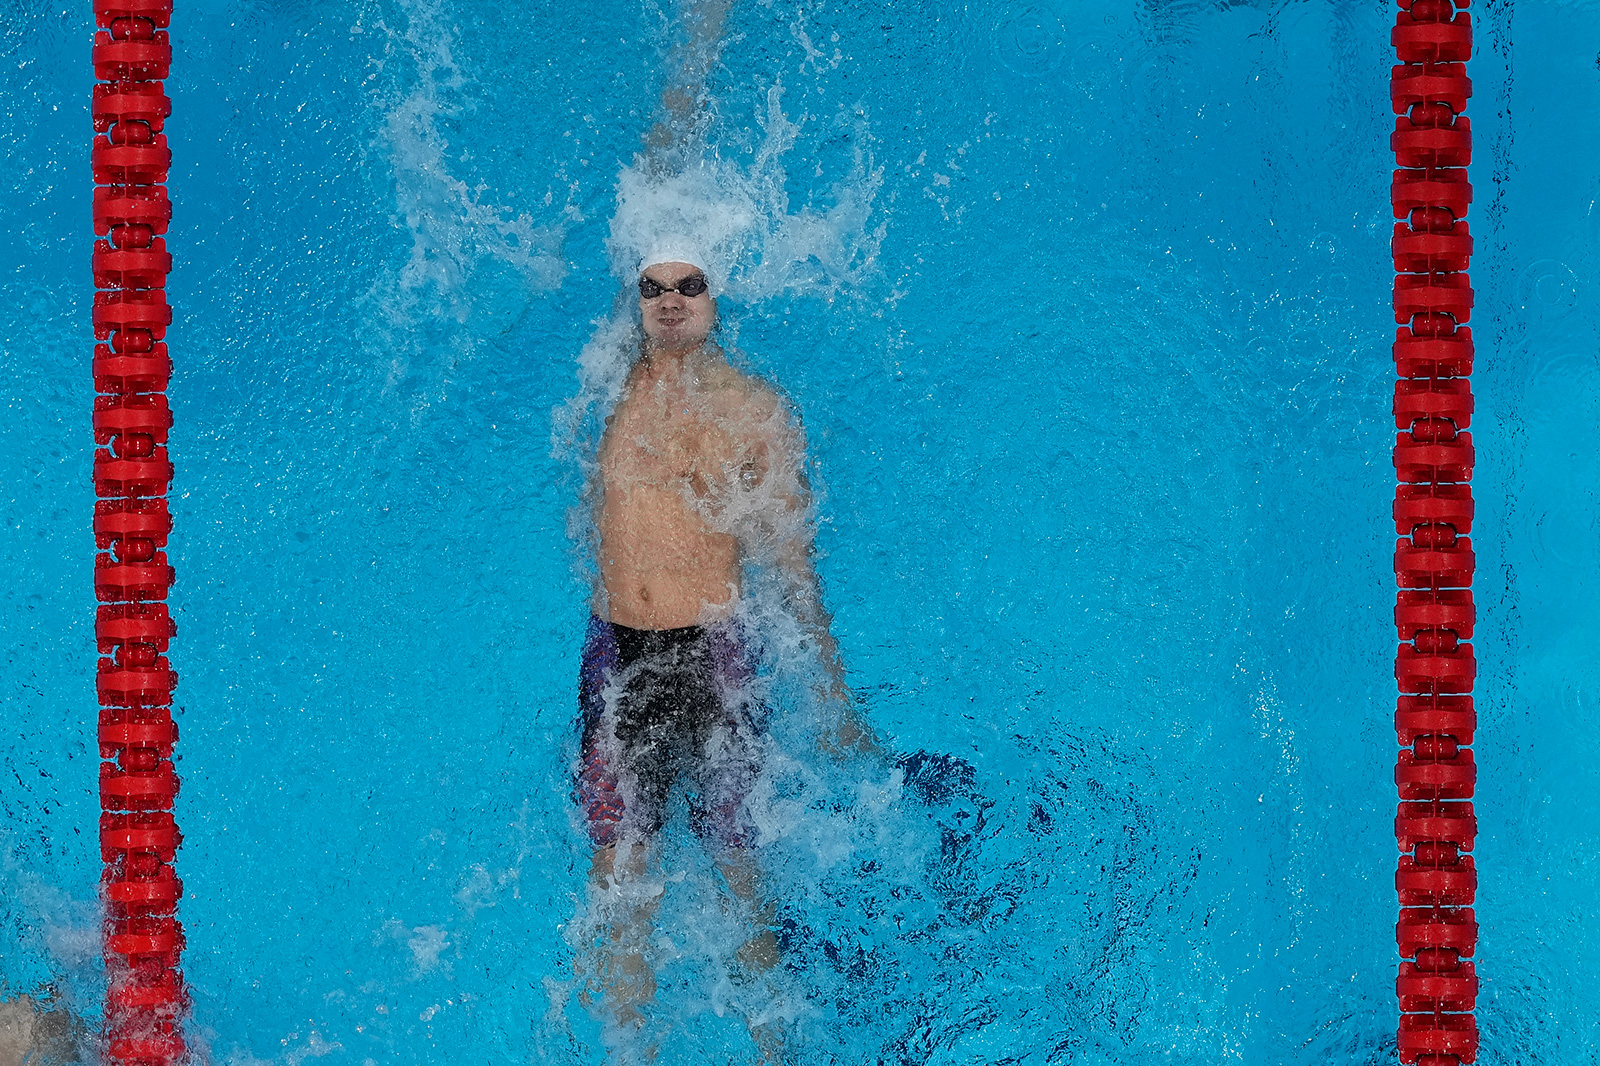 Russian swimmer Evgeny Rylov swims to victory in the 200-meter backstroke final on Friday.